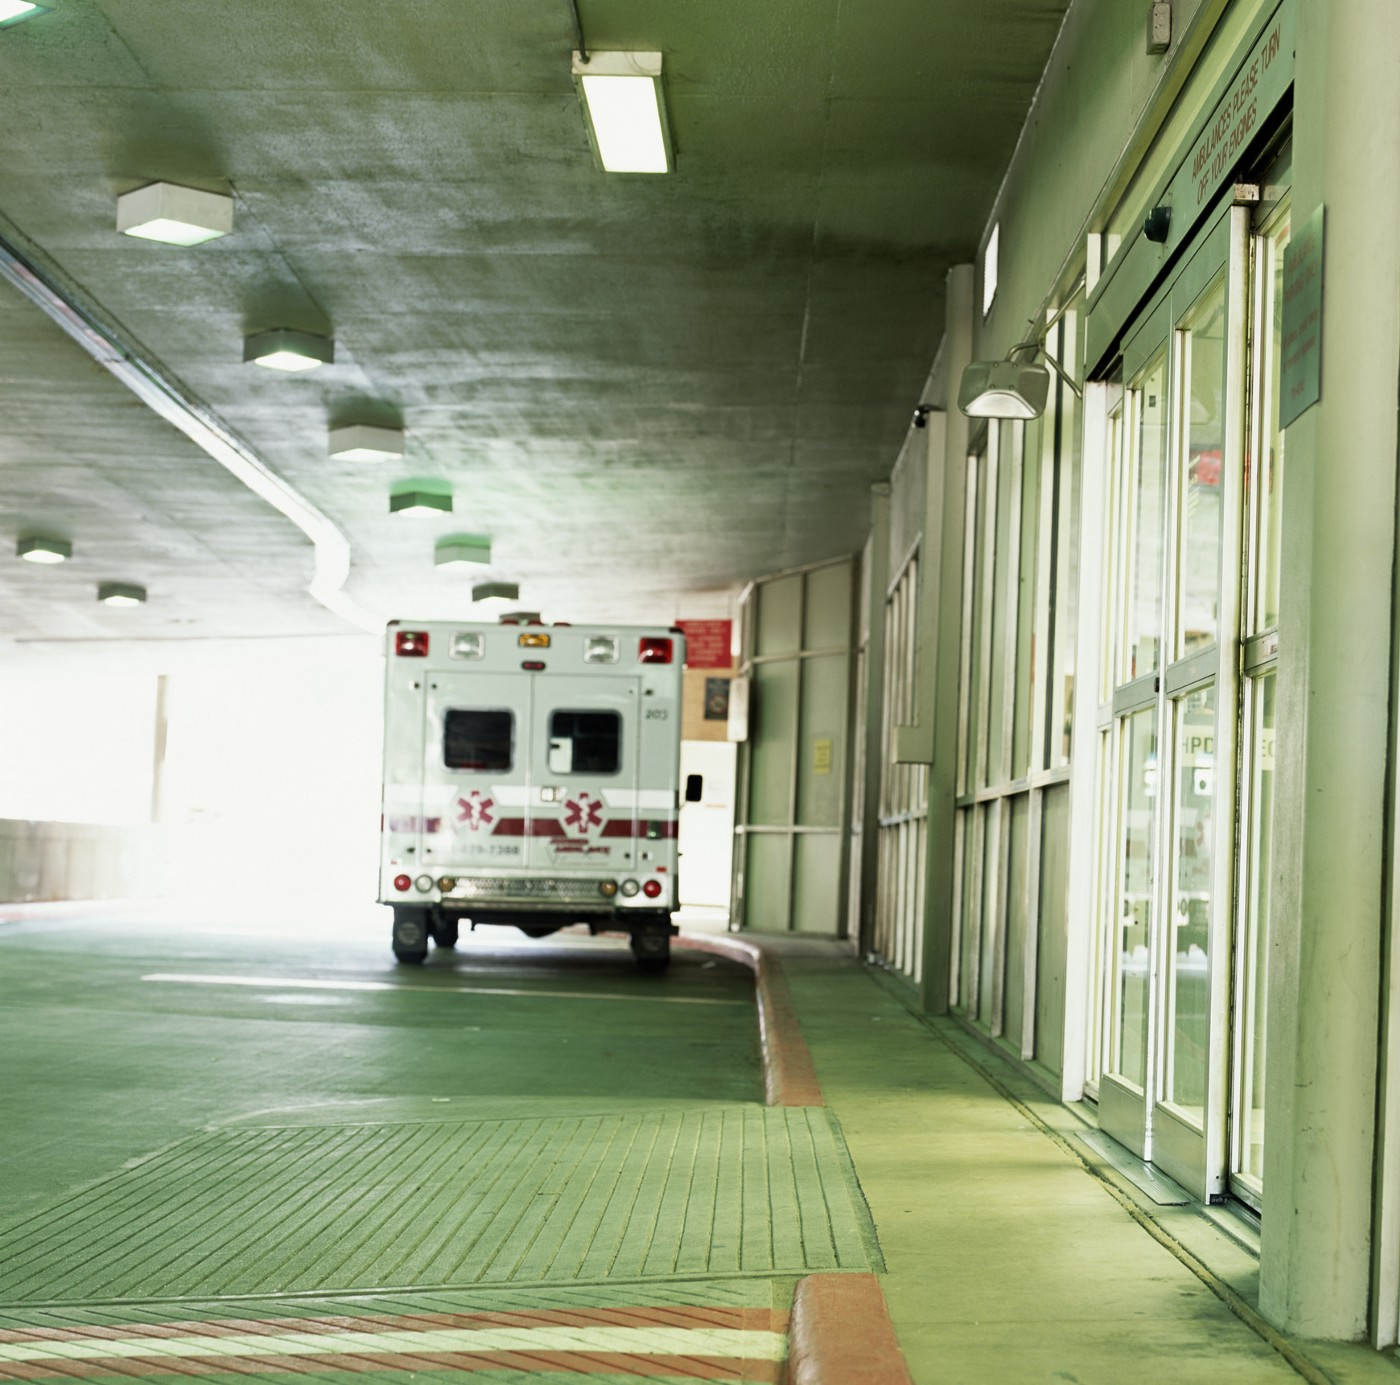 A photo of an ambulance in front of a hospital entrance.